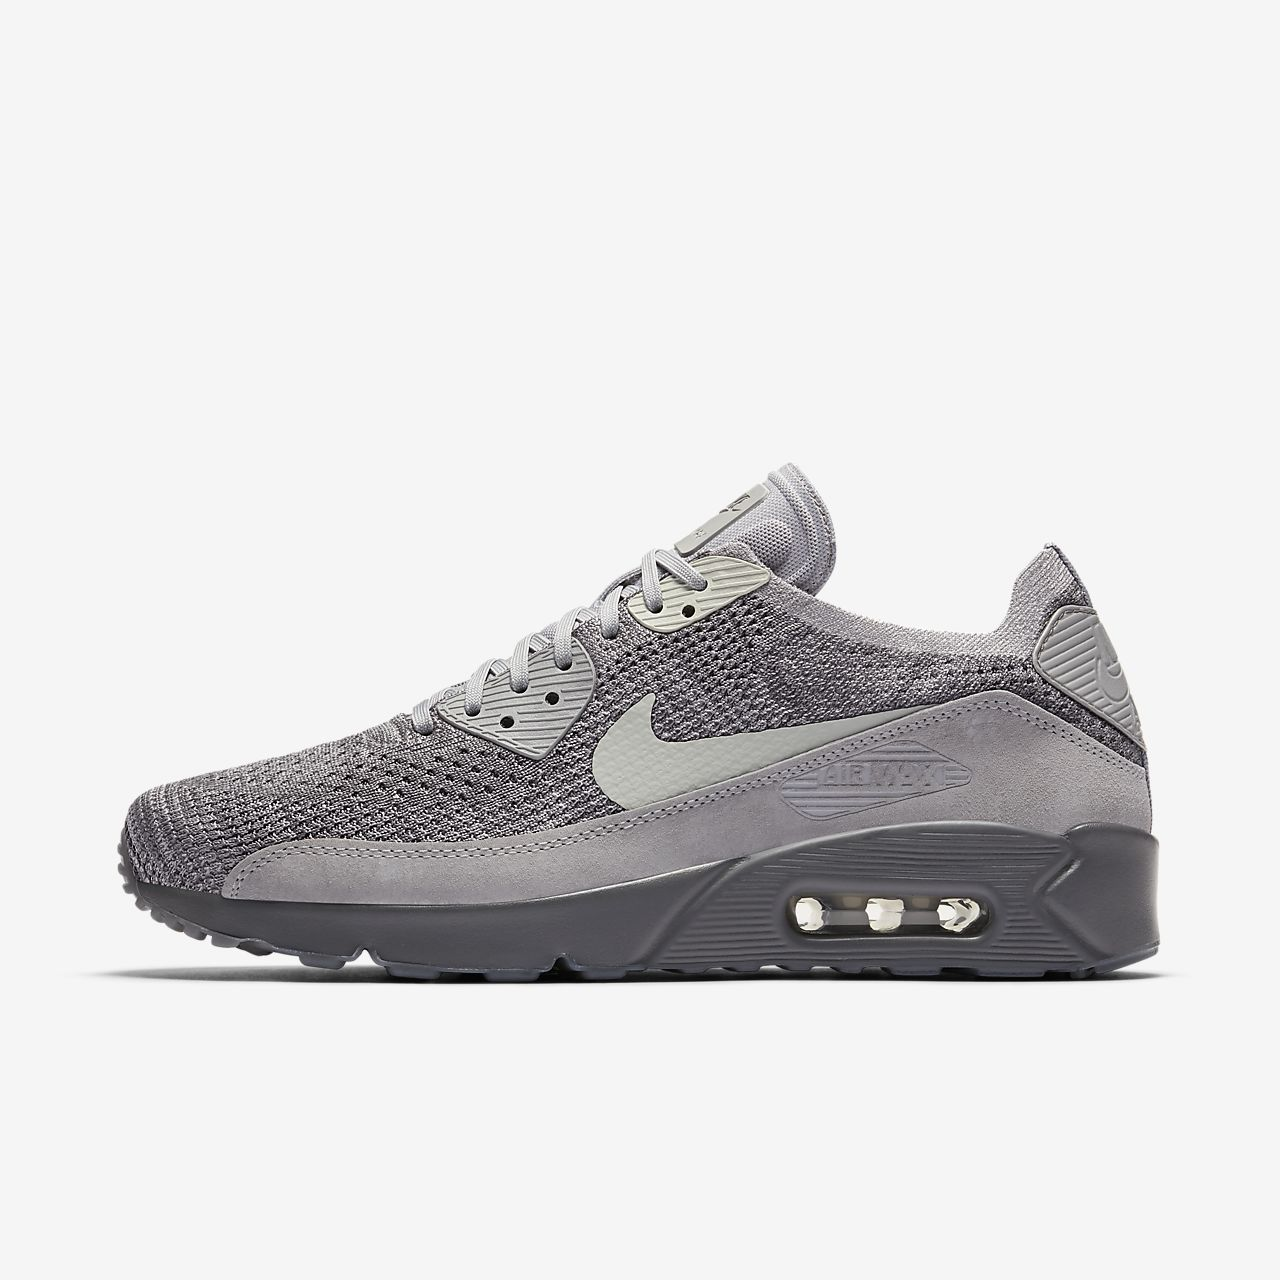 Nike Air Max 90 Kpu Tpu Men'S Running Shoes Air Max